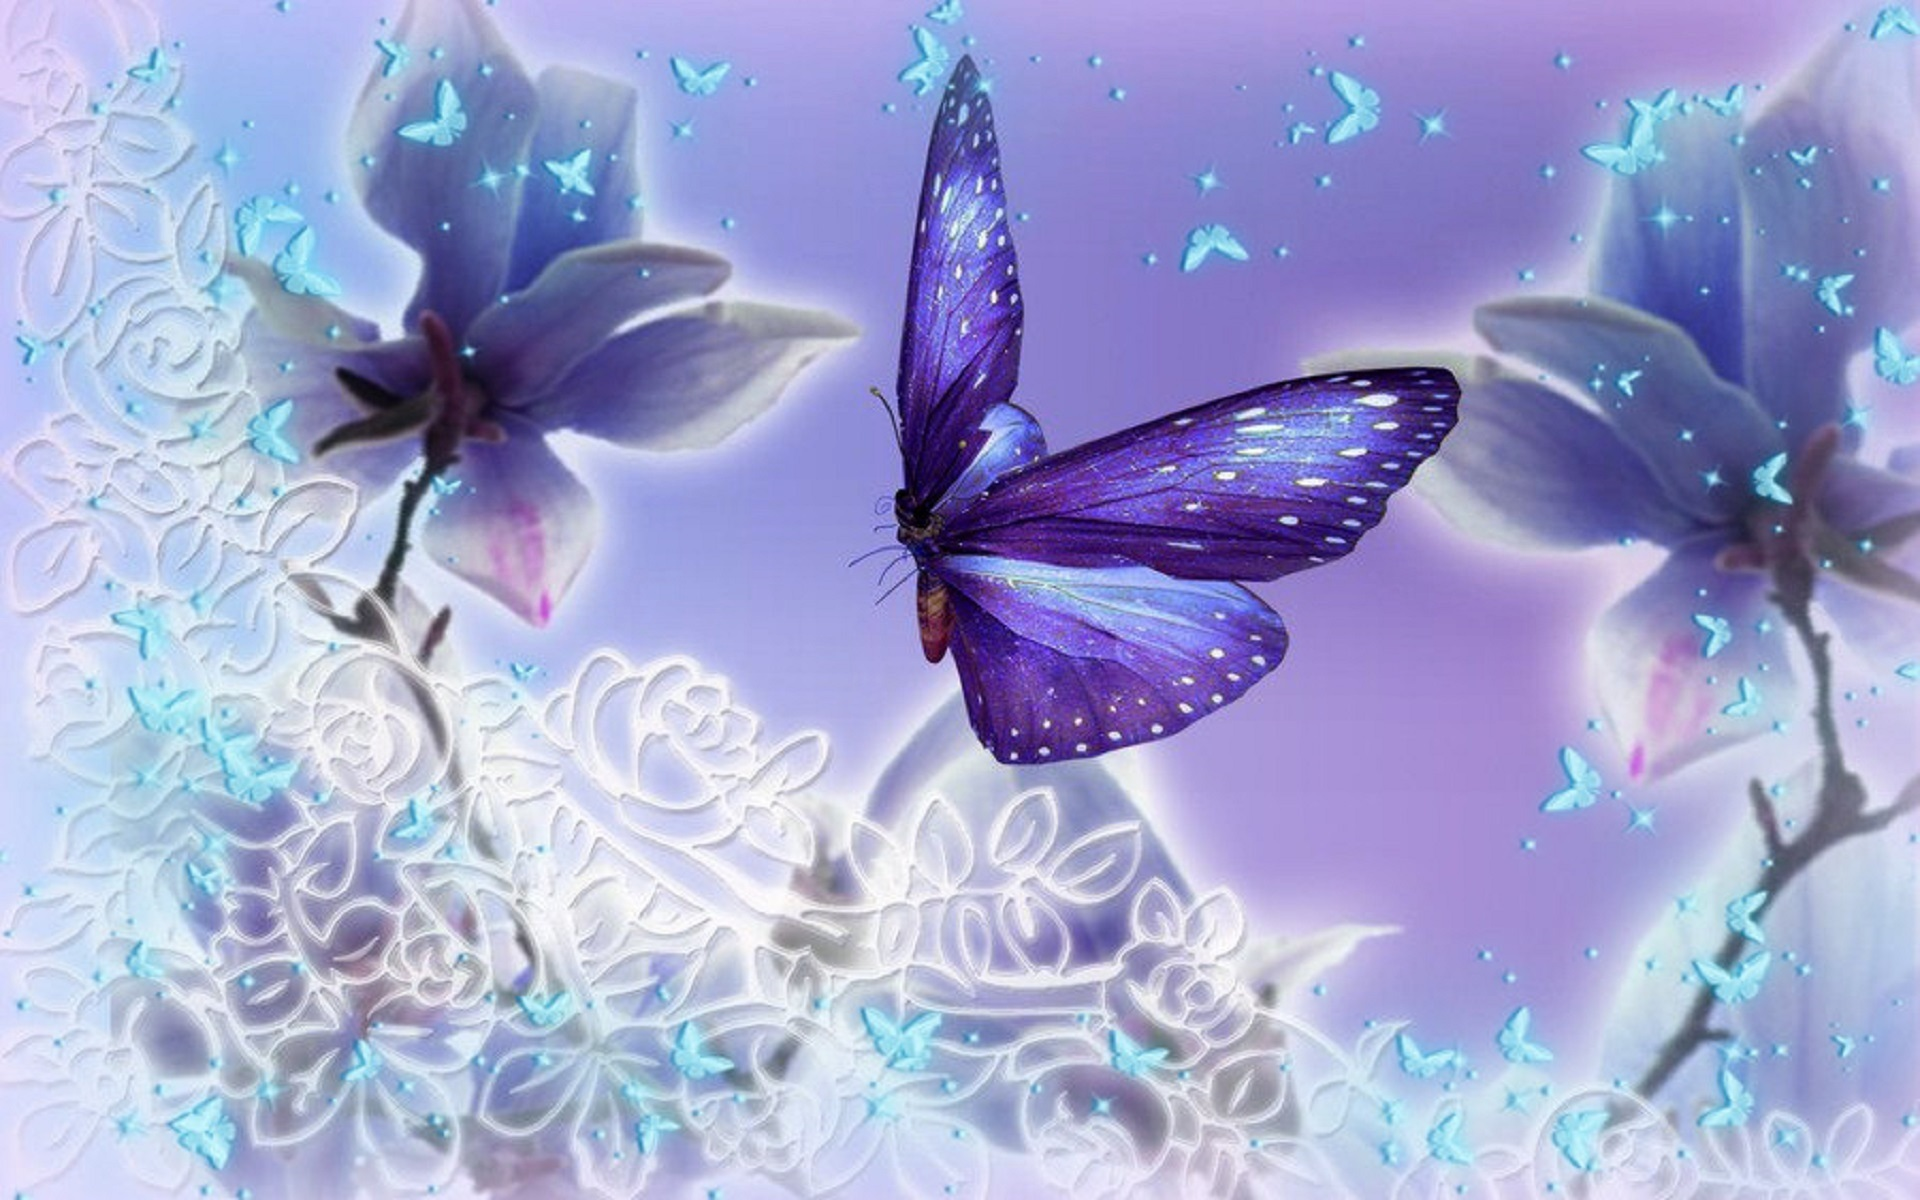 Butterfly Backgrounds free download   PixelsTalk Net       purple Butterflies Sparkling       Wide Desktop Background